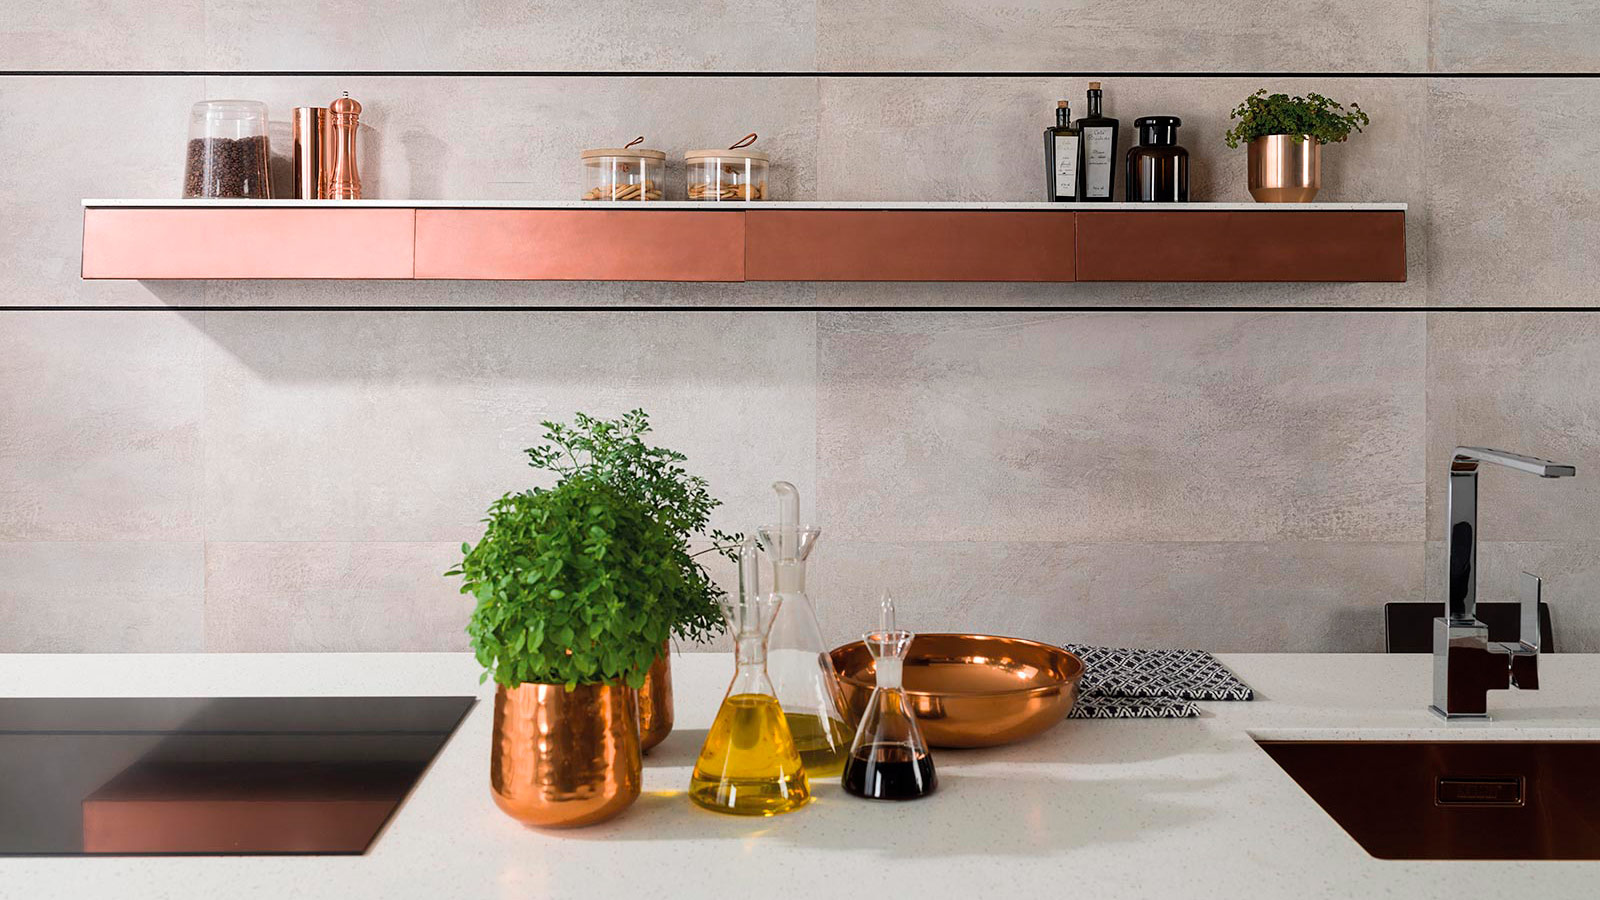 The most suitable materials for the kitchen backsplash